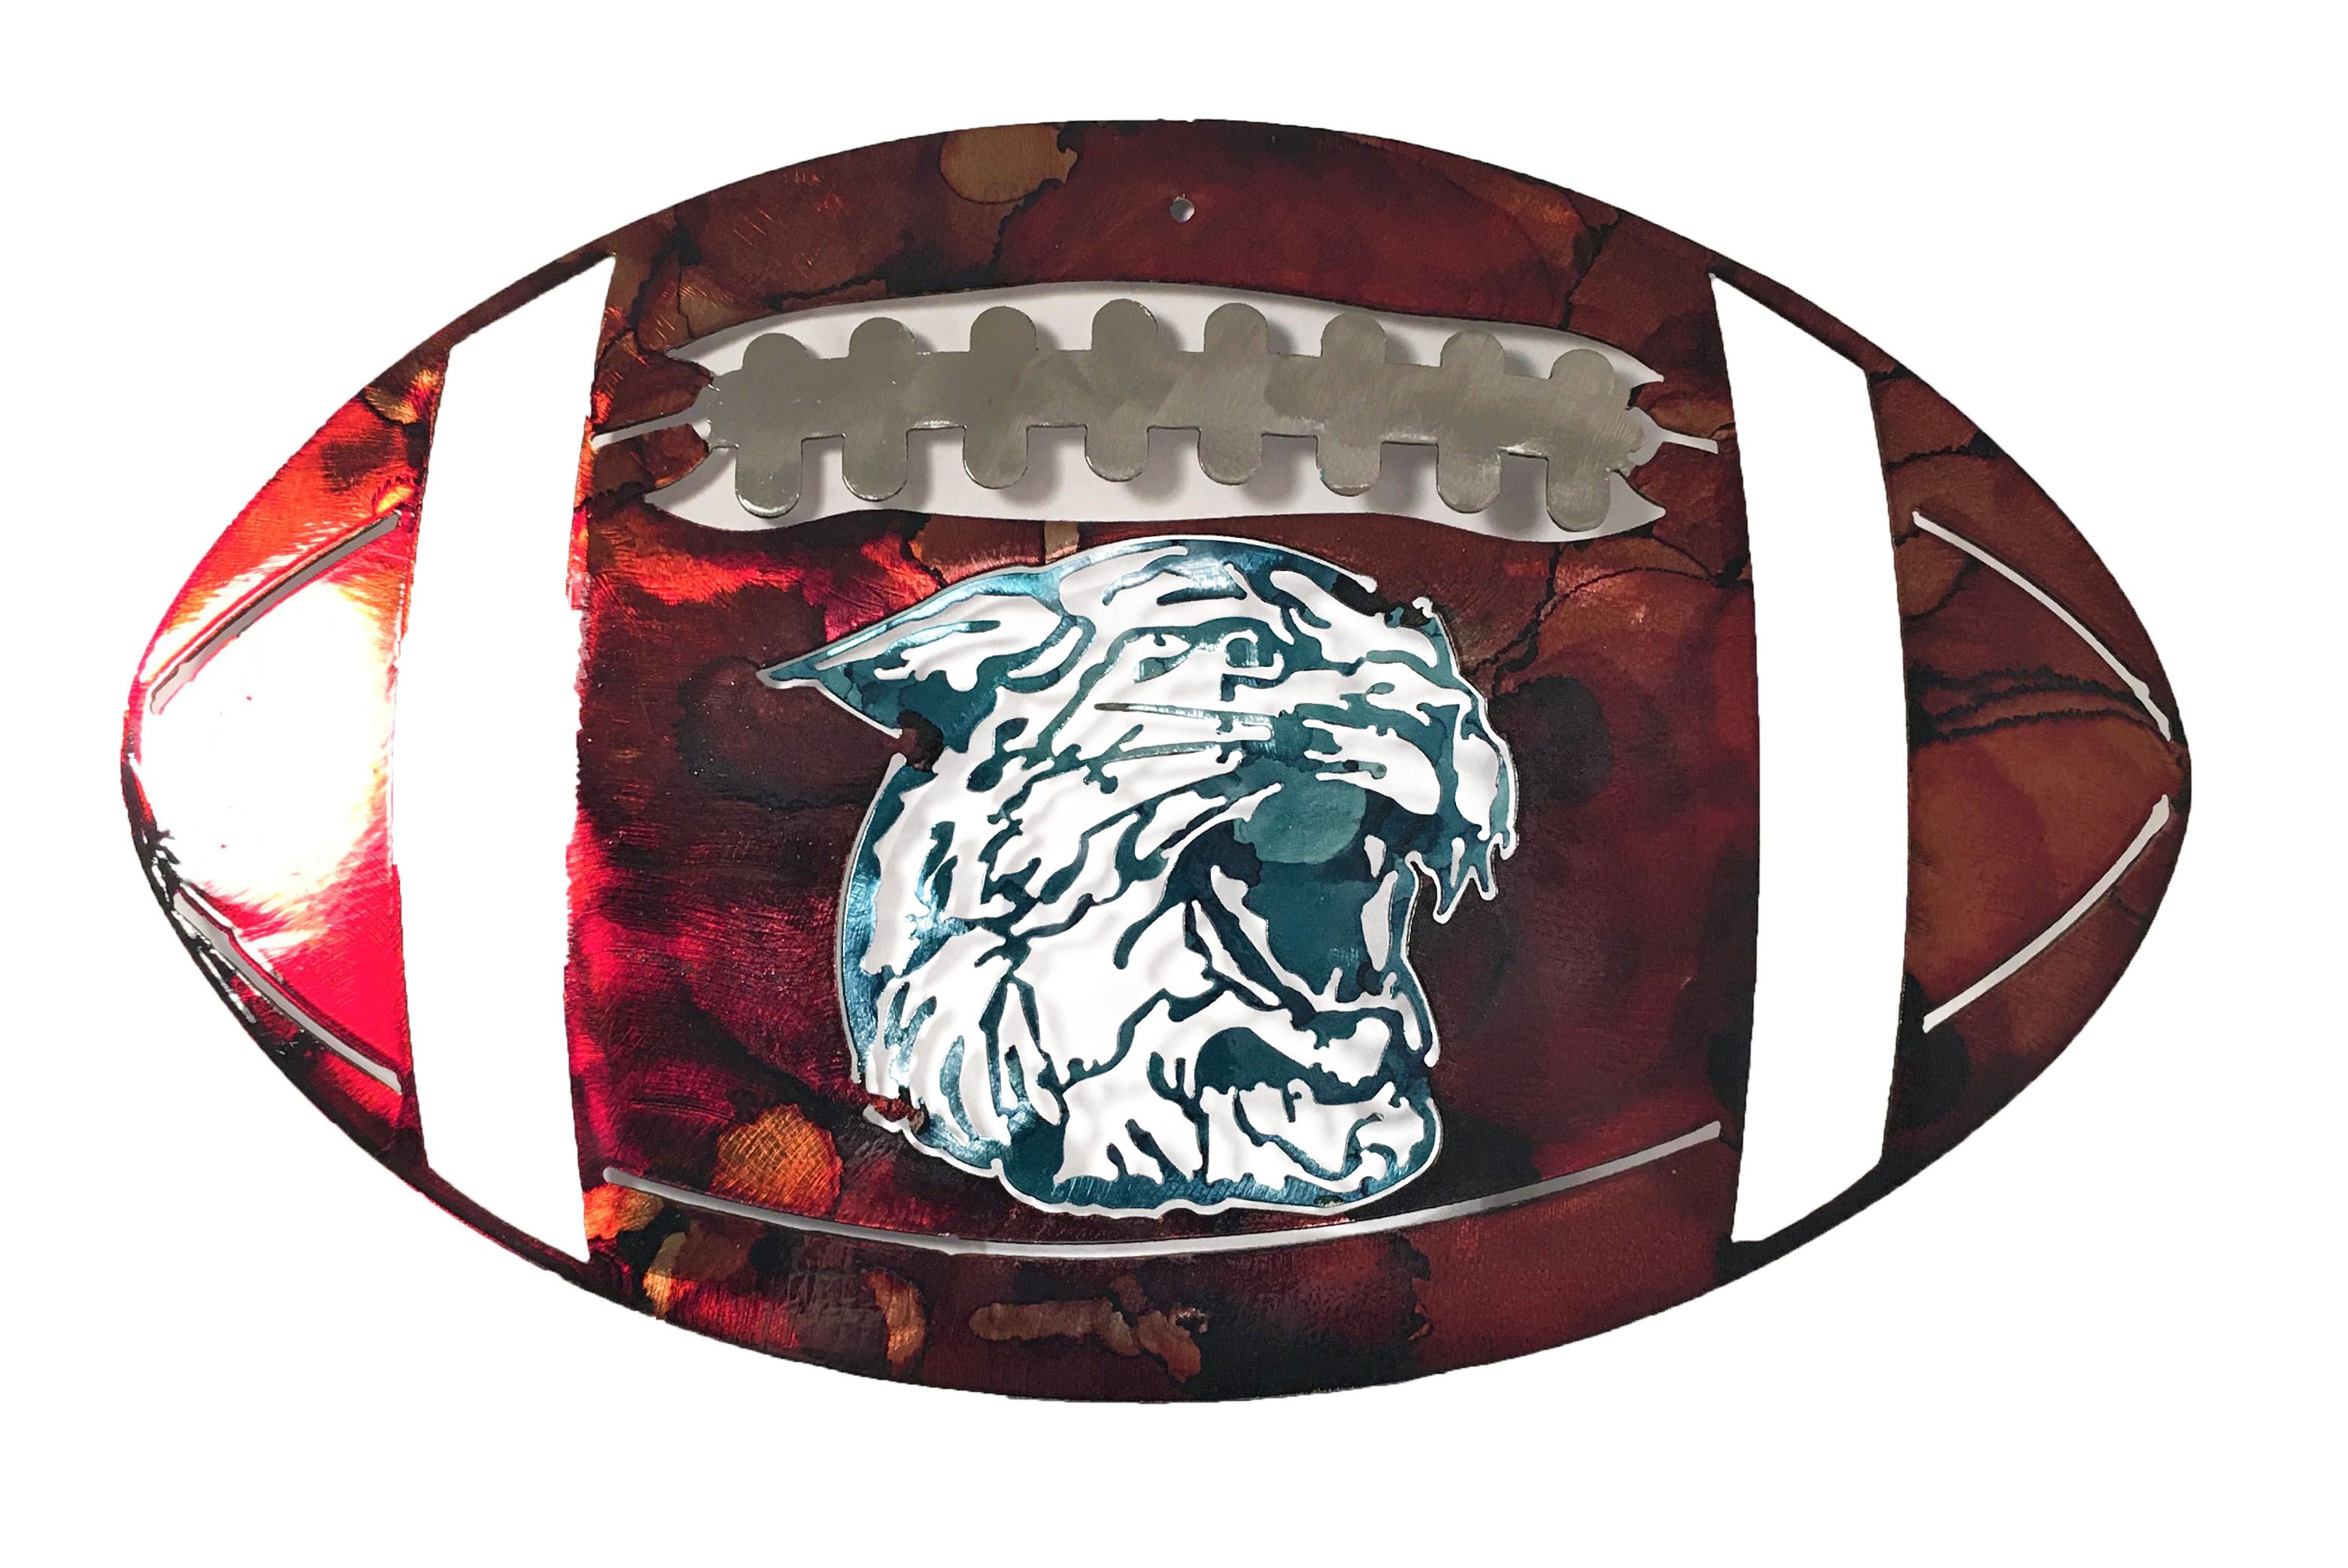 Custom_Football_HoltonWildcats